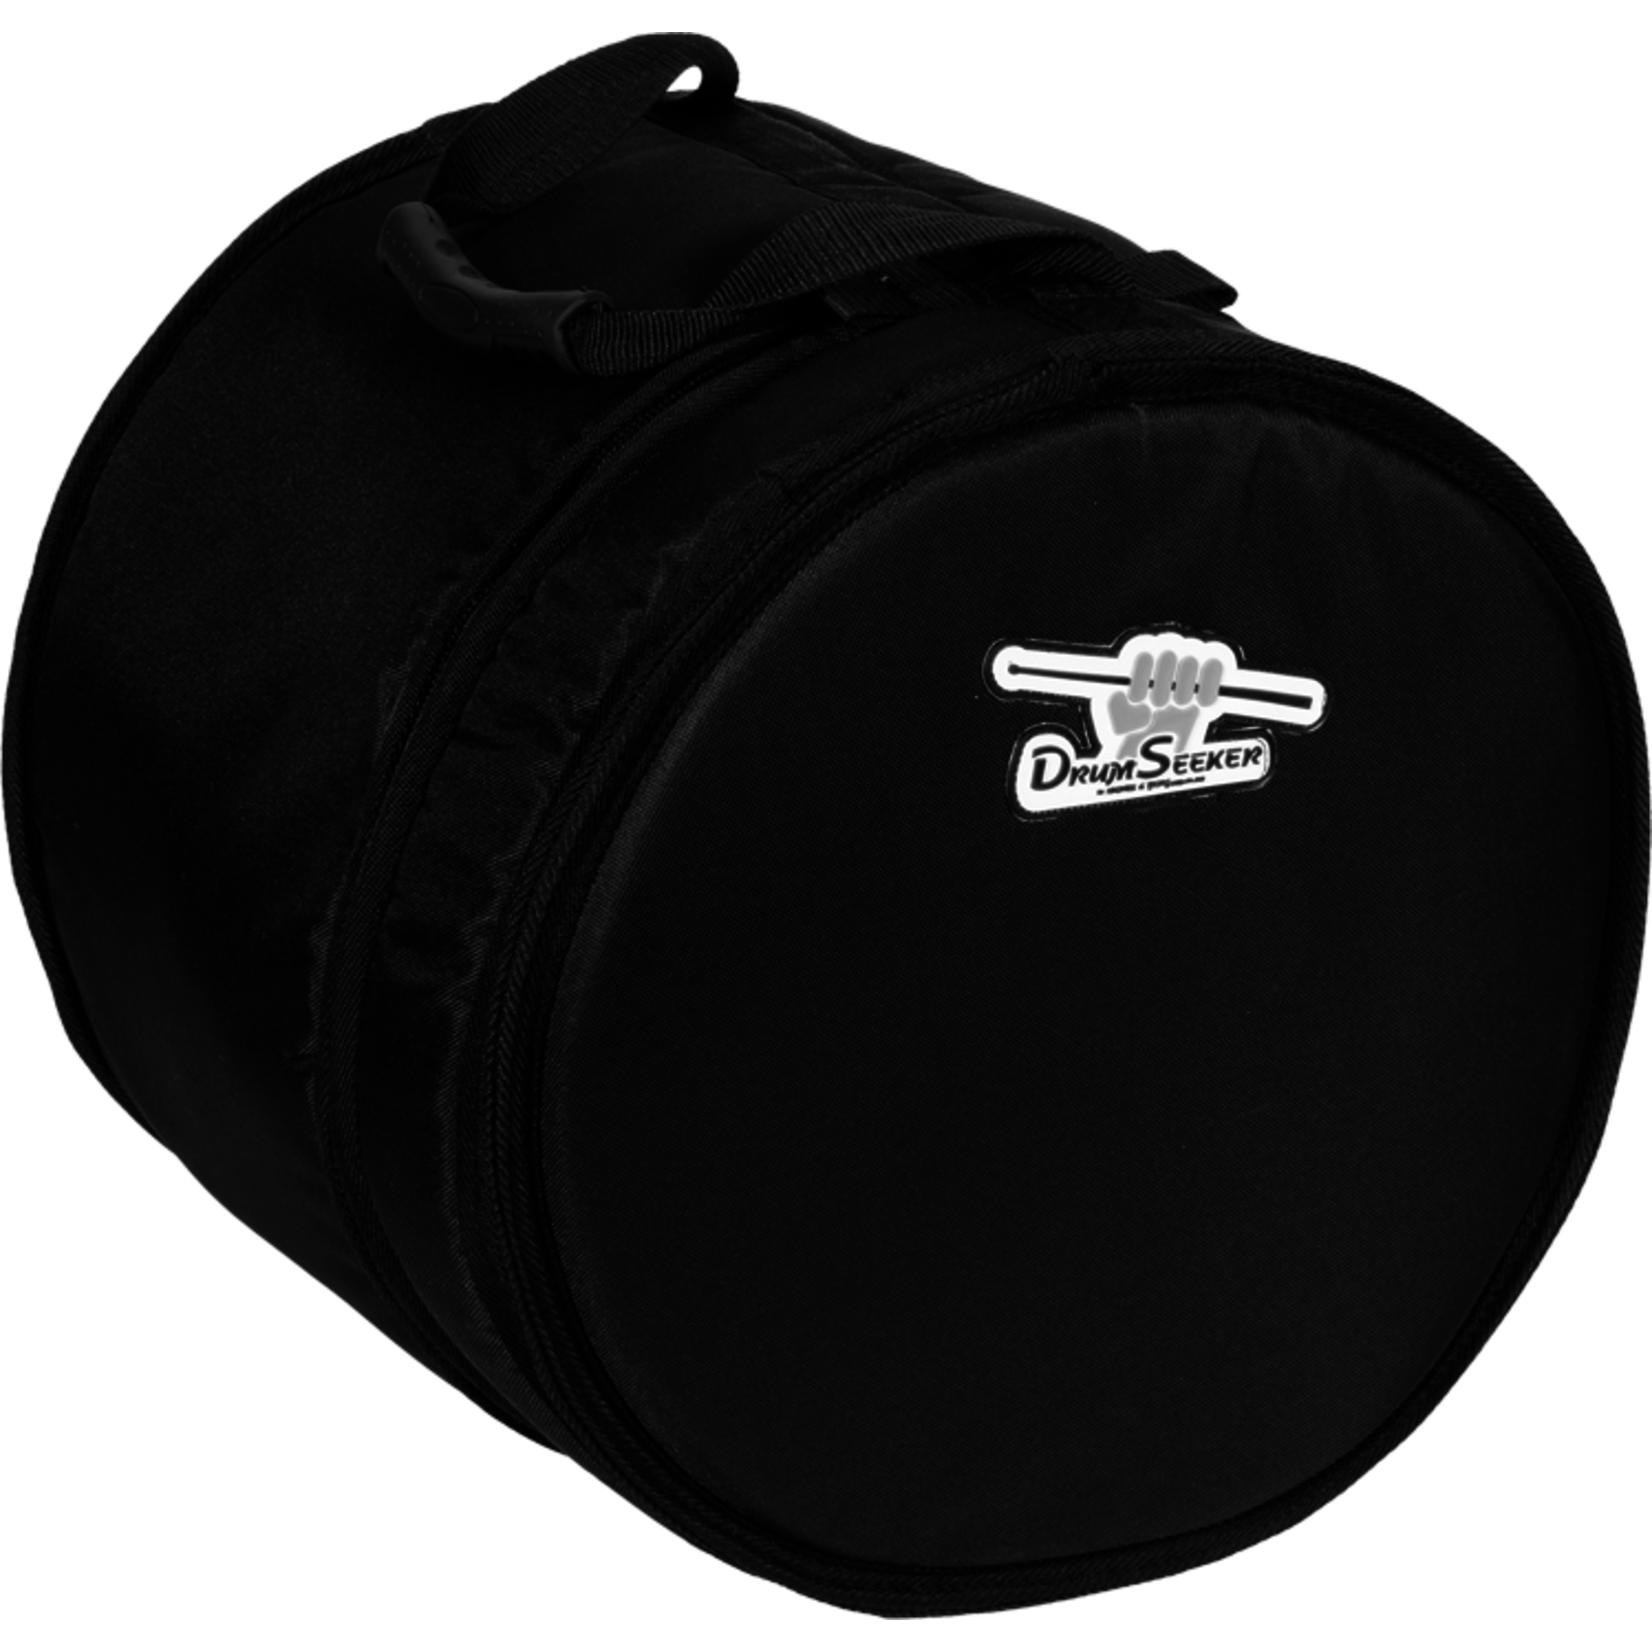 Humes and Berg Humes and Berg Drum Seeker 8x10 Bag